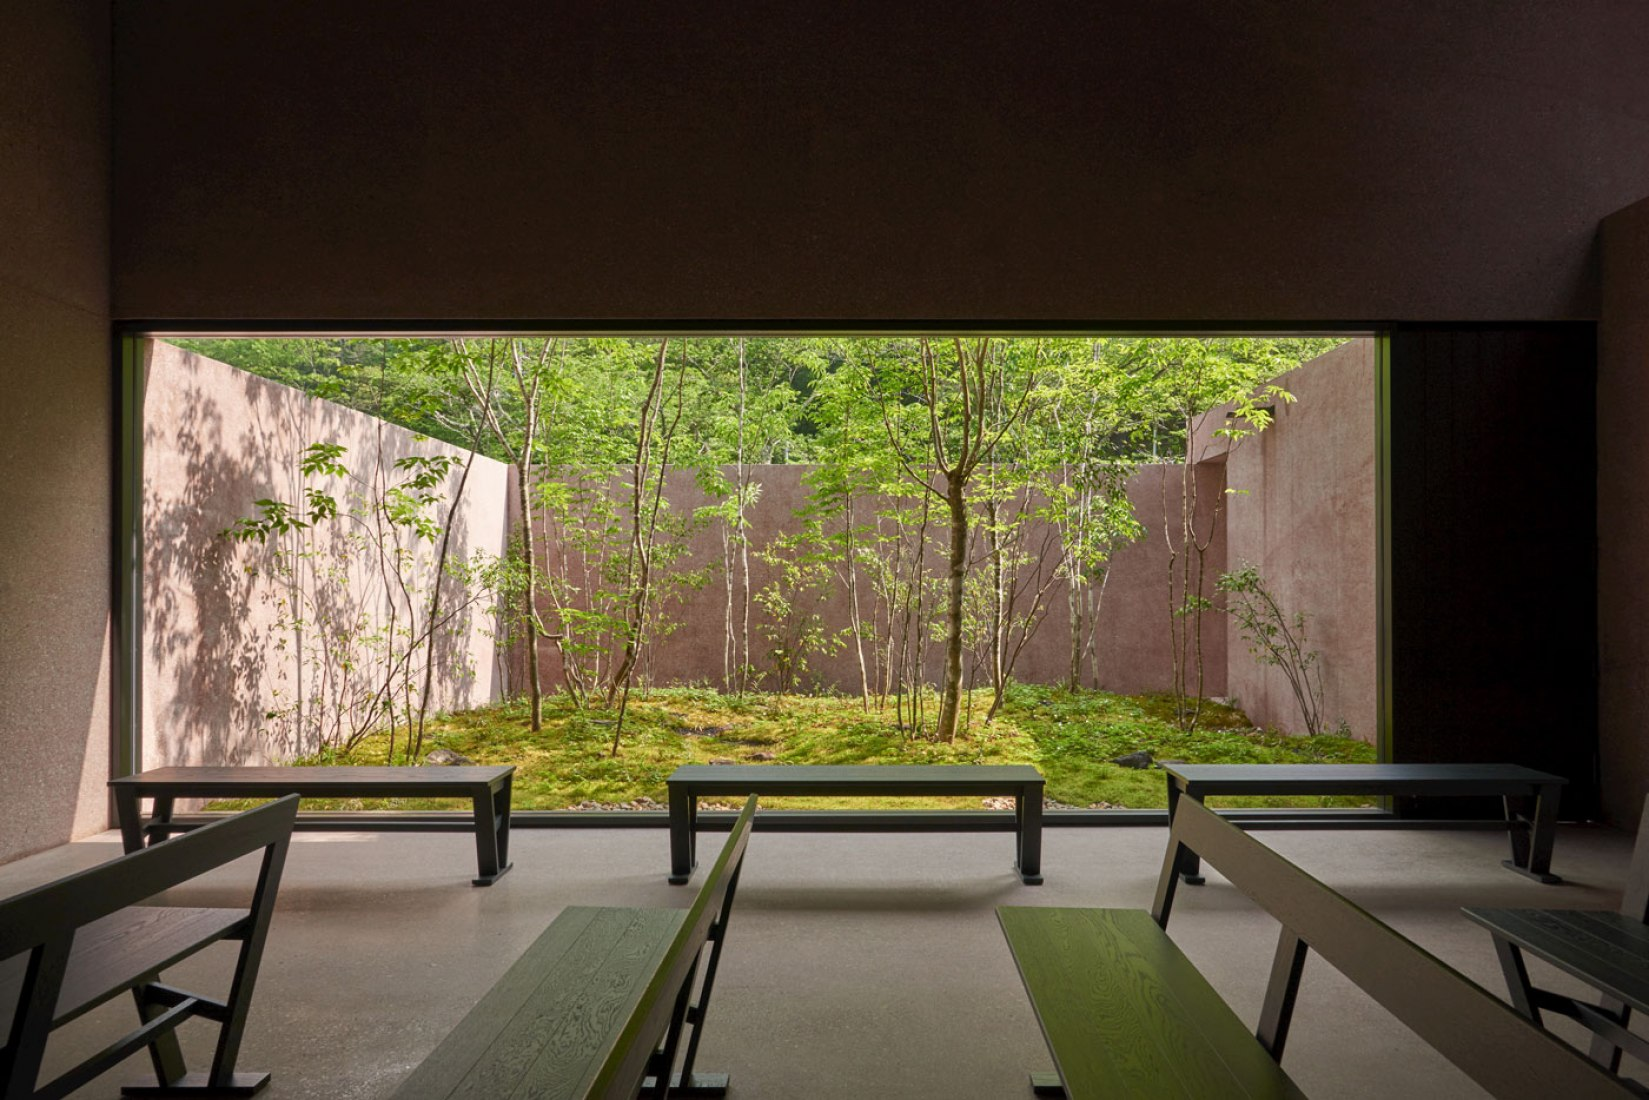 Inagawa Cemetery chapel and visitor centre by David Chipperfield Architects. Photograph © Keiko Sasaoka